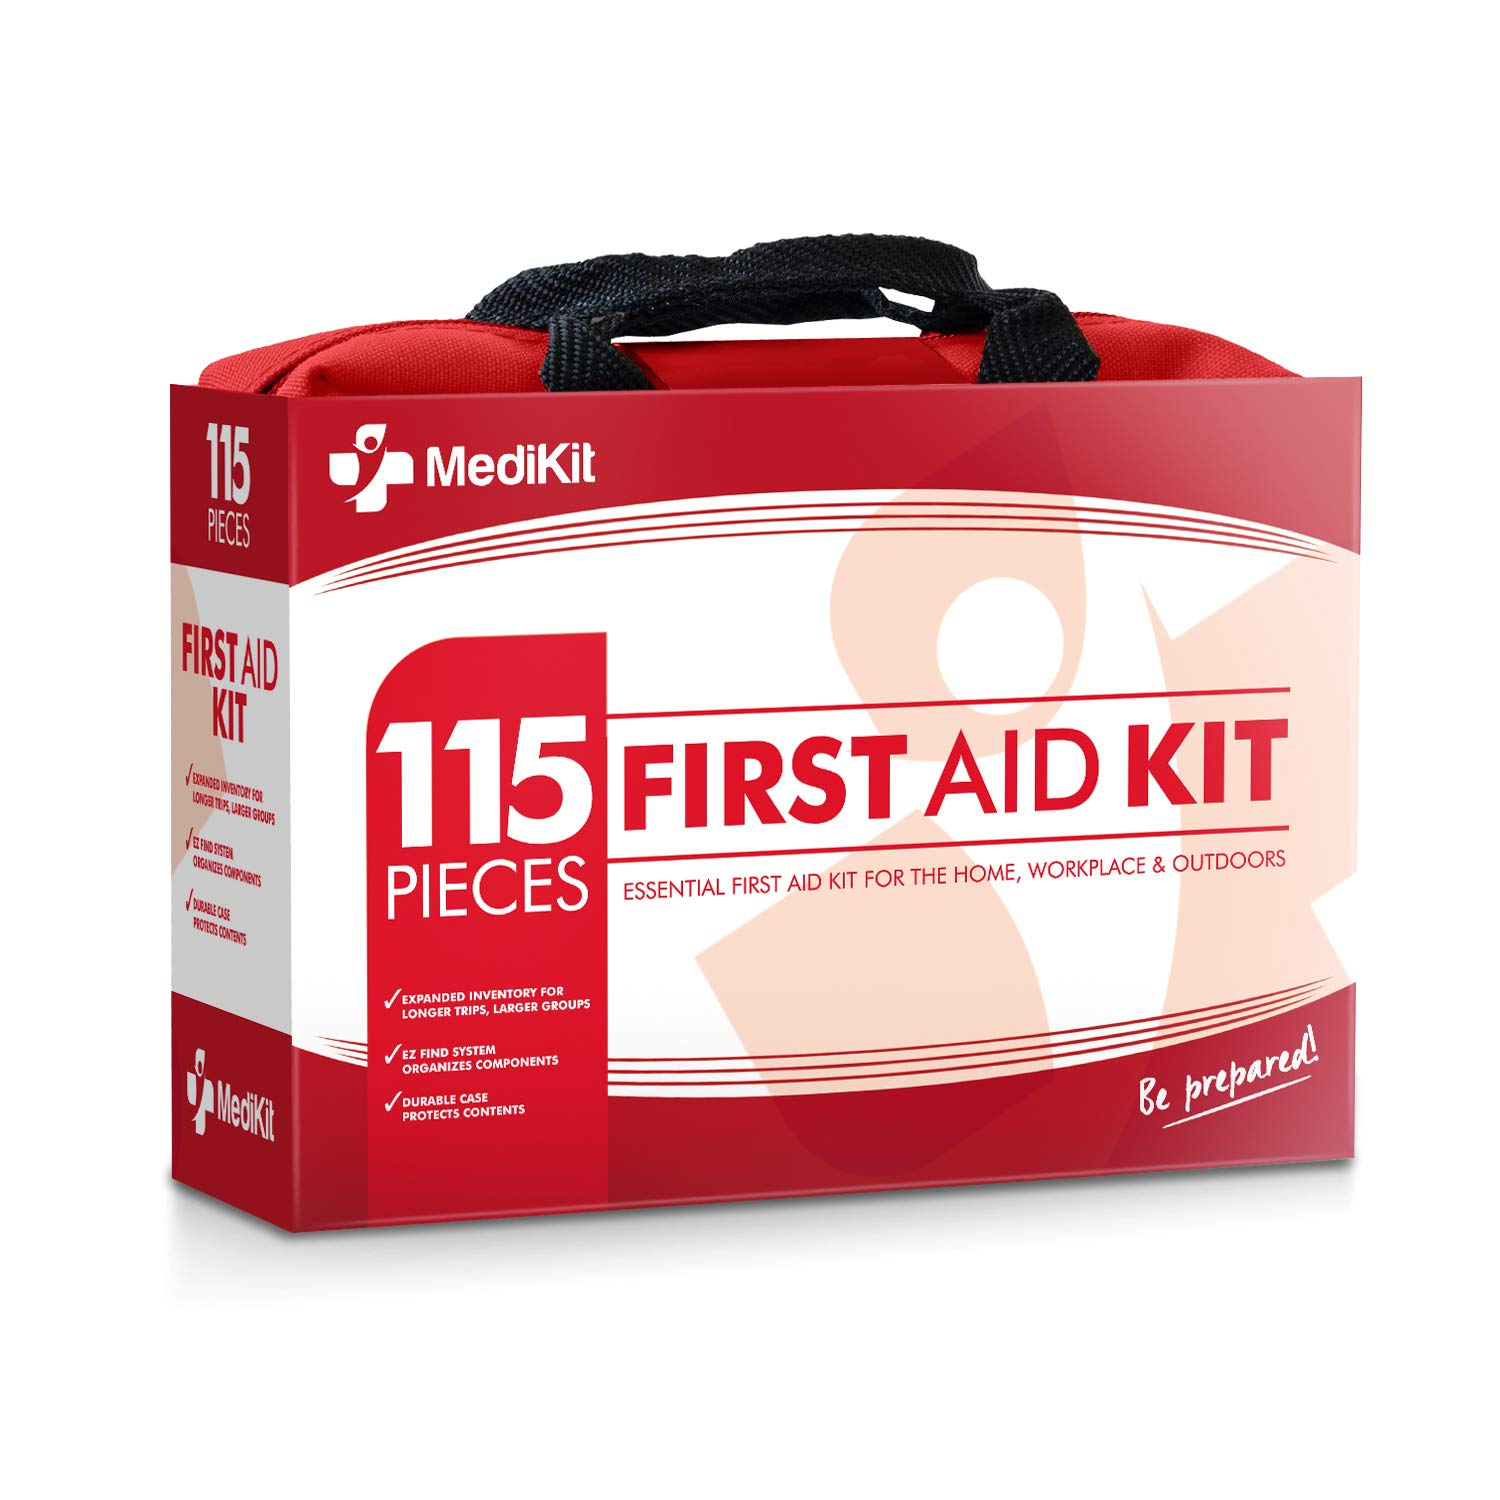 MediKit Deluxe First Aid Kit (115 Items) The Most Essential First Aid Supplies for Home, Sports, Travel, Camping, Office and The Workplace ... (Red) by MediKit